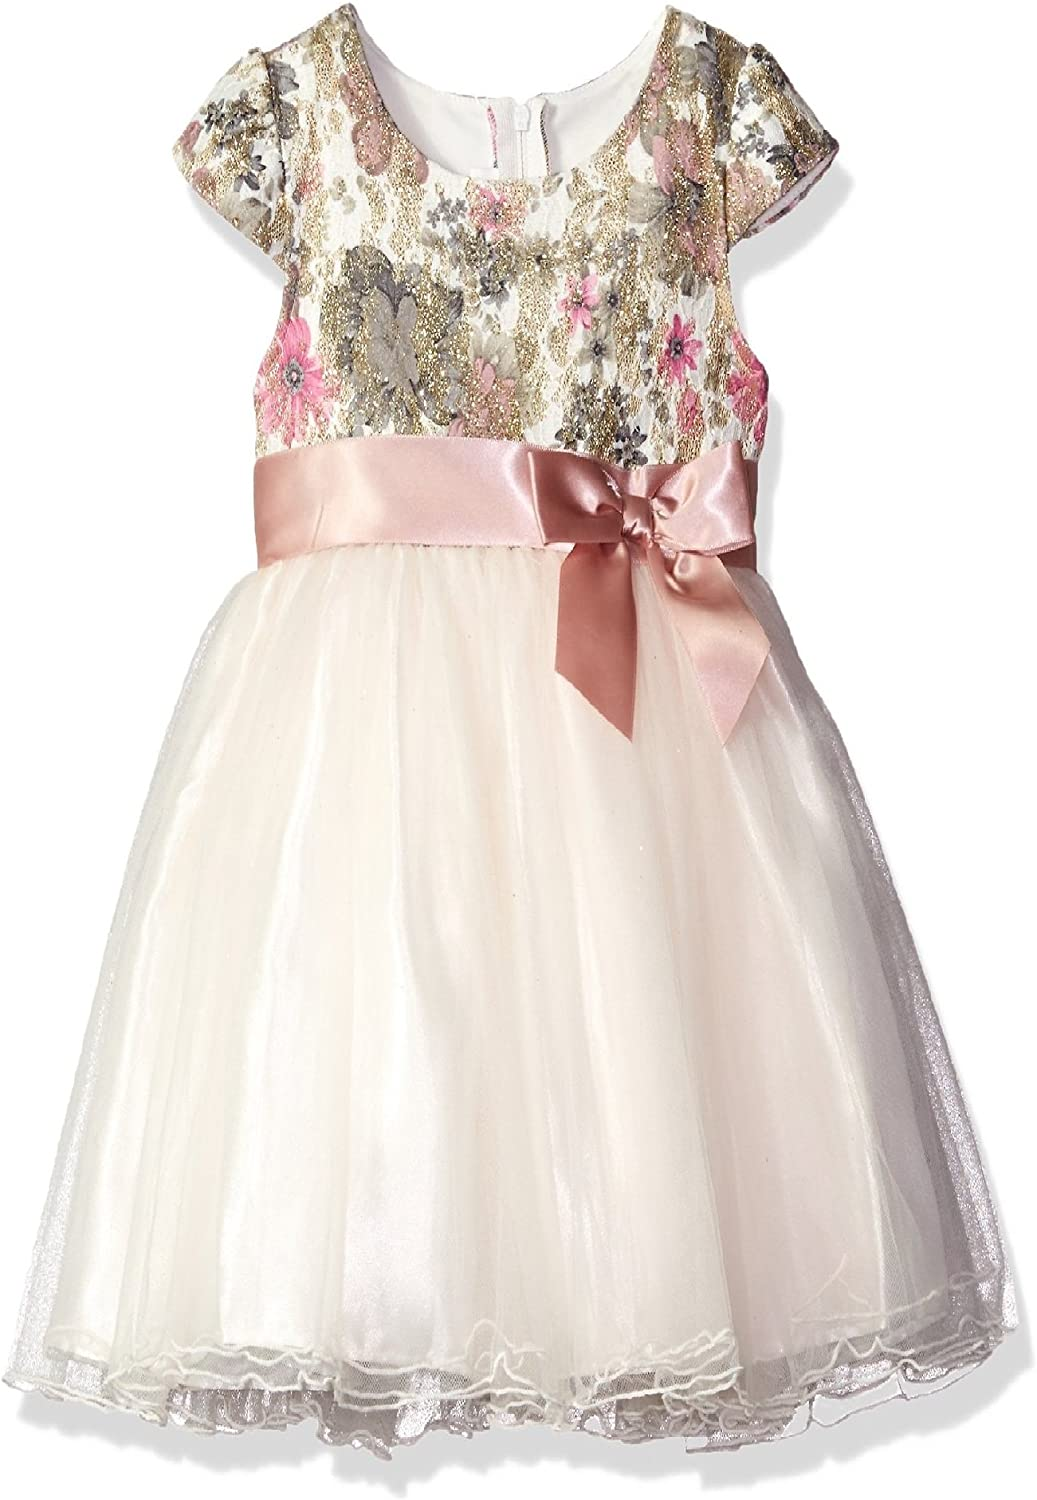 Bonnie Jean Girls Bonded Lace Flower Fall Holiday Dress, Ivory, 7-16